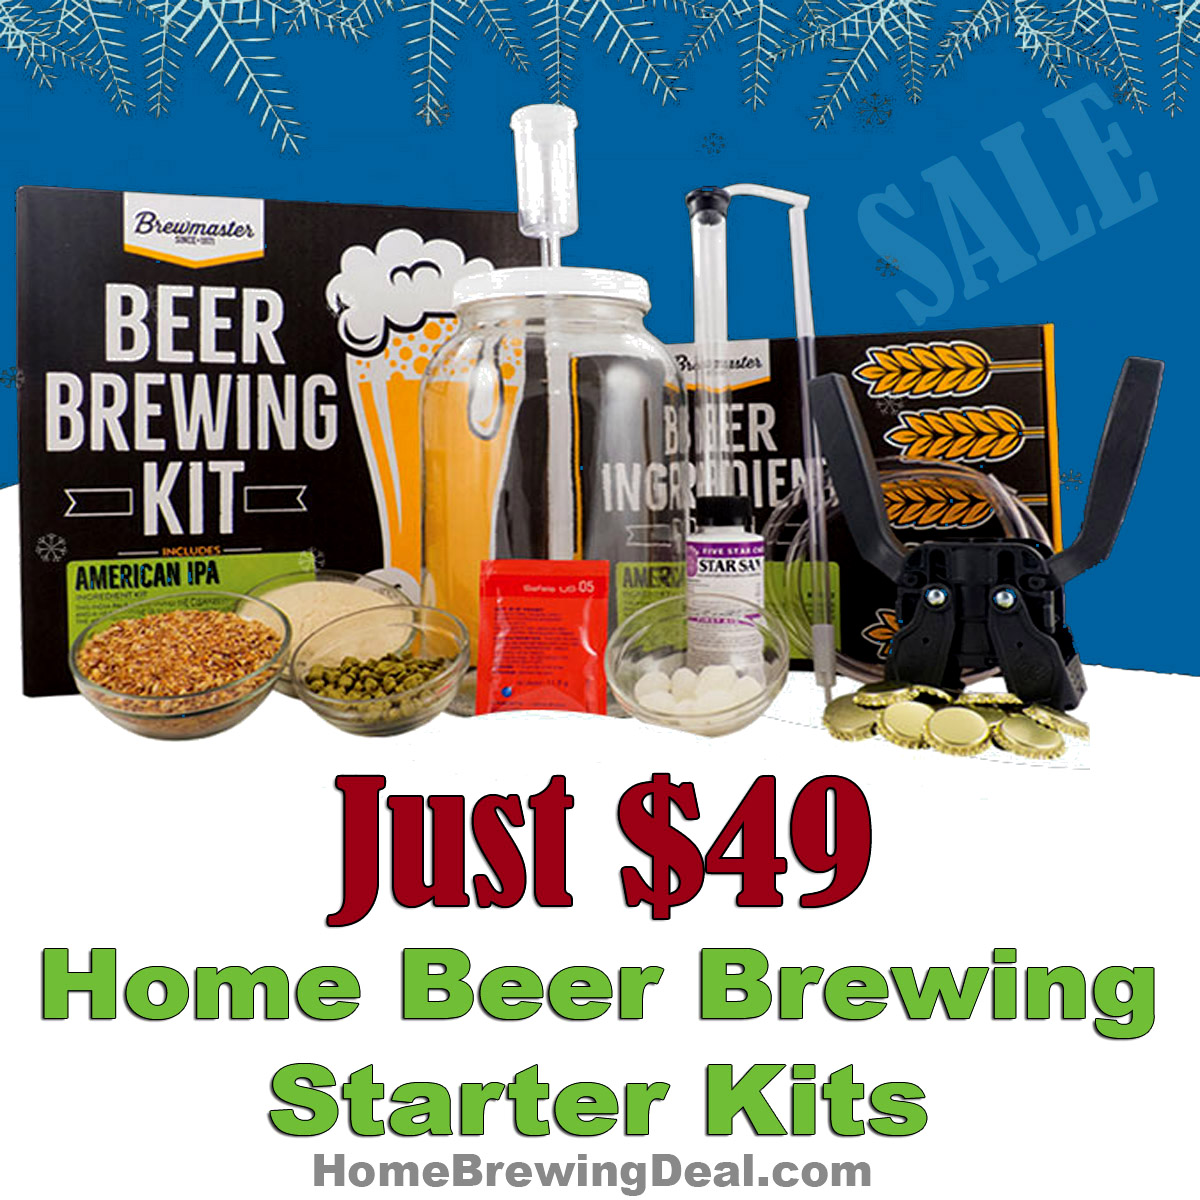 Give The Gift Of Brewing Home Beer Brewing Starter Kits